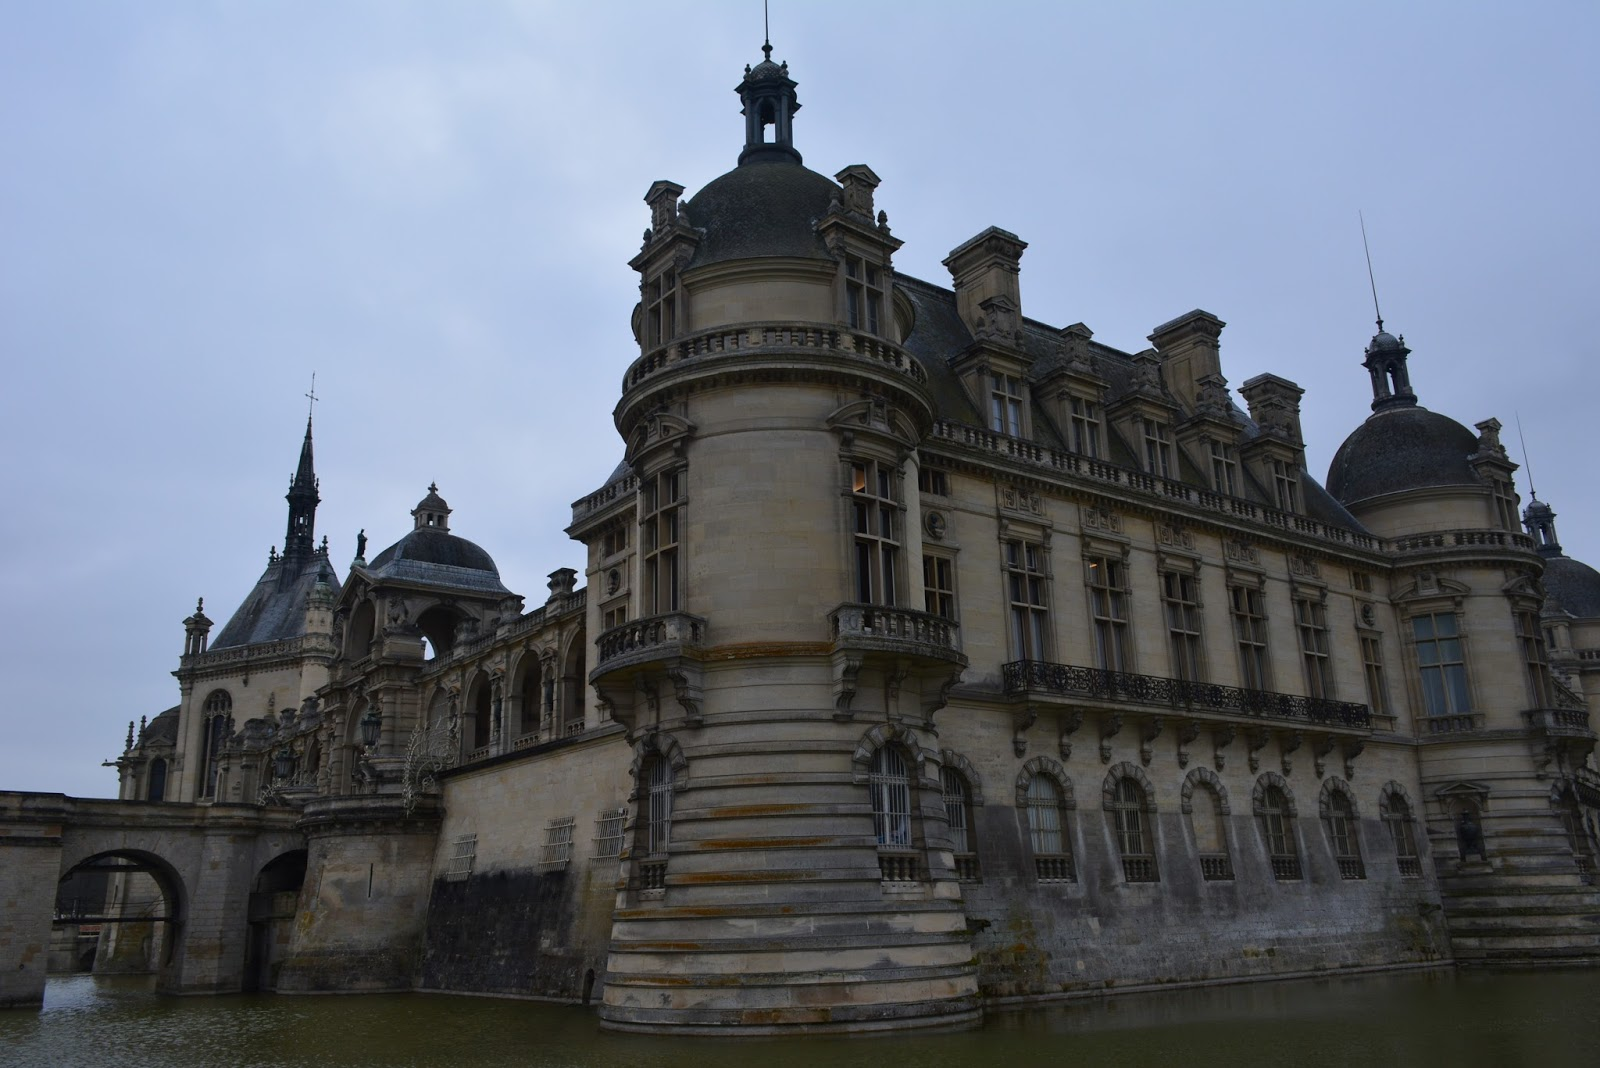 Chateau de chantilly freemash - Chateau de chantilly adresse ...